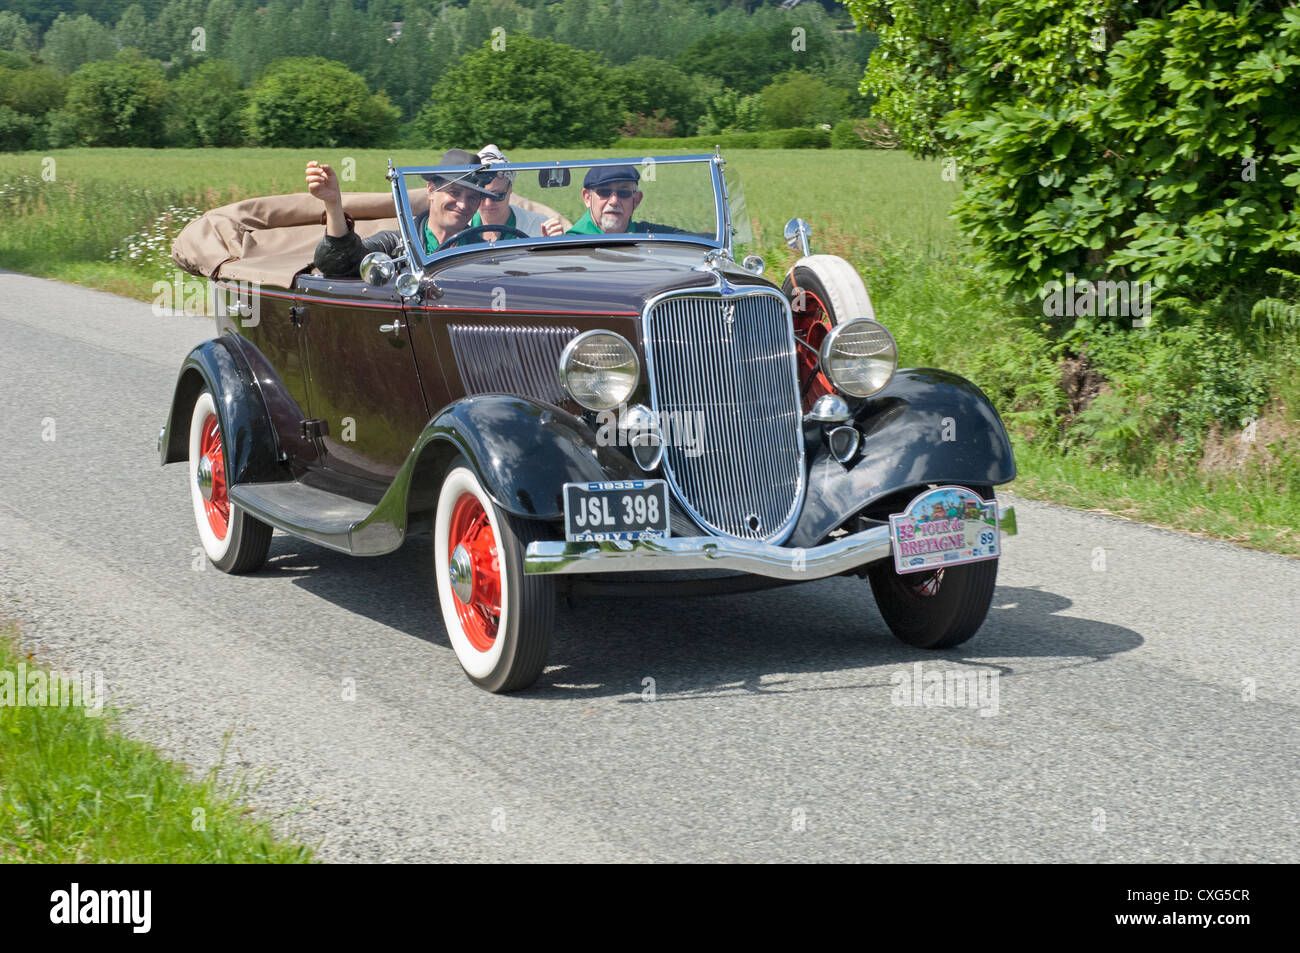 Ford v8 40 torpedo of 1933 in the tour de bretagne france 2012